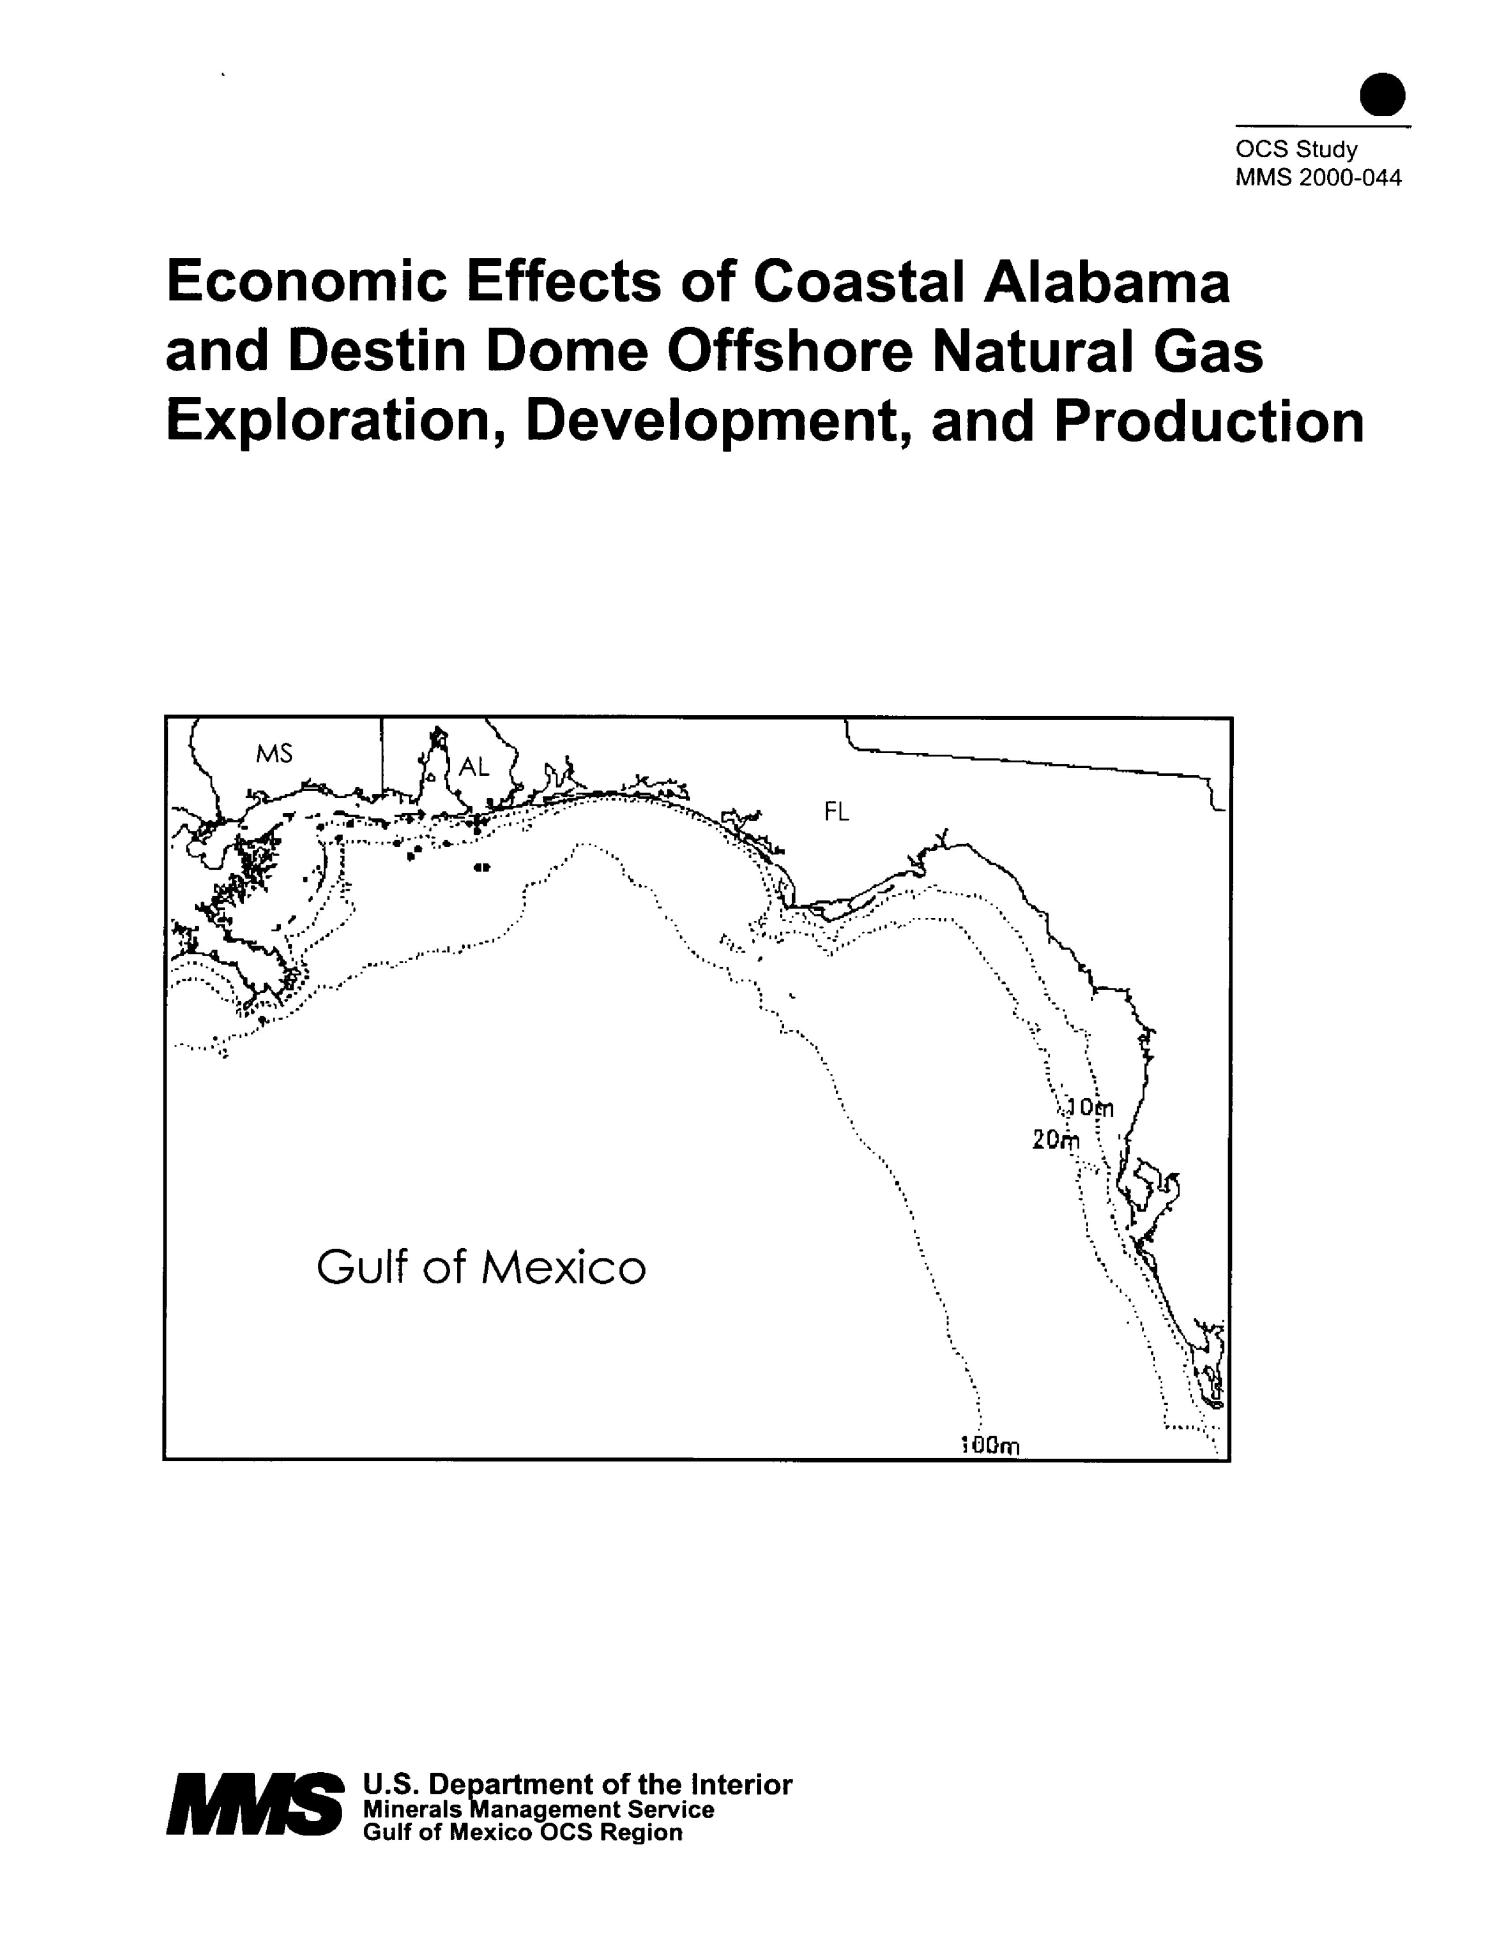 Economic Effects of Coastal Alabama and Destin Dome Offshore Natural Gas Exploration, Development and Production                                                                                                      [Sequence #]: 1 of 218